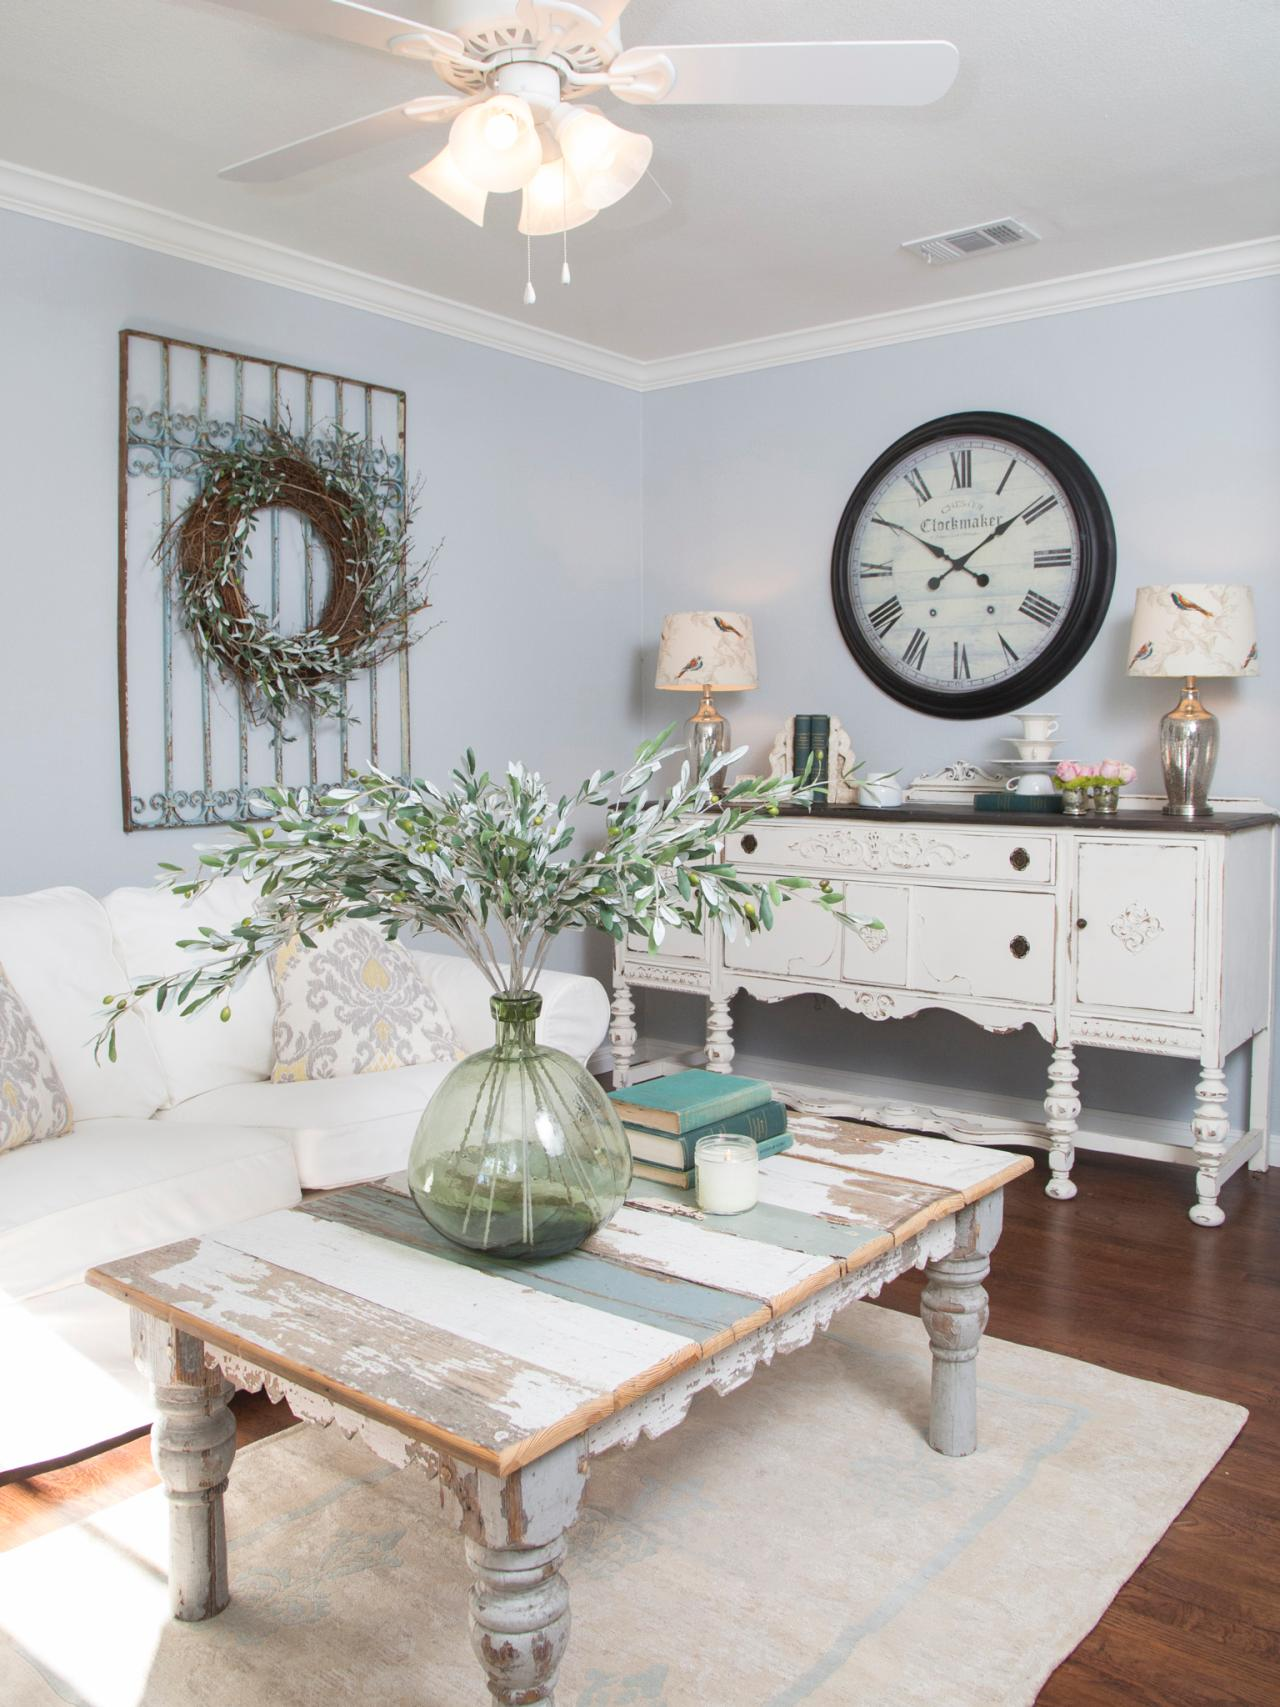 Joanna Gaines Home Design easy rustic diys joanna gaines would totally approve of Fill Your Walls With Fixer Upper Inspired Artwork 11 Easy To Copy Looks Hgtvs Decorating Design Blog Hgtv